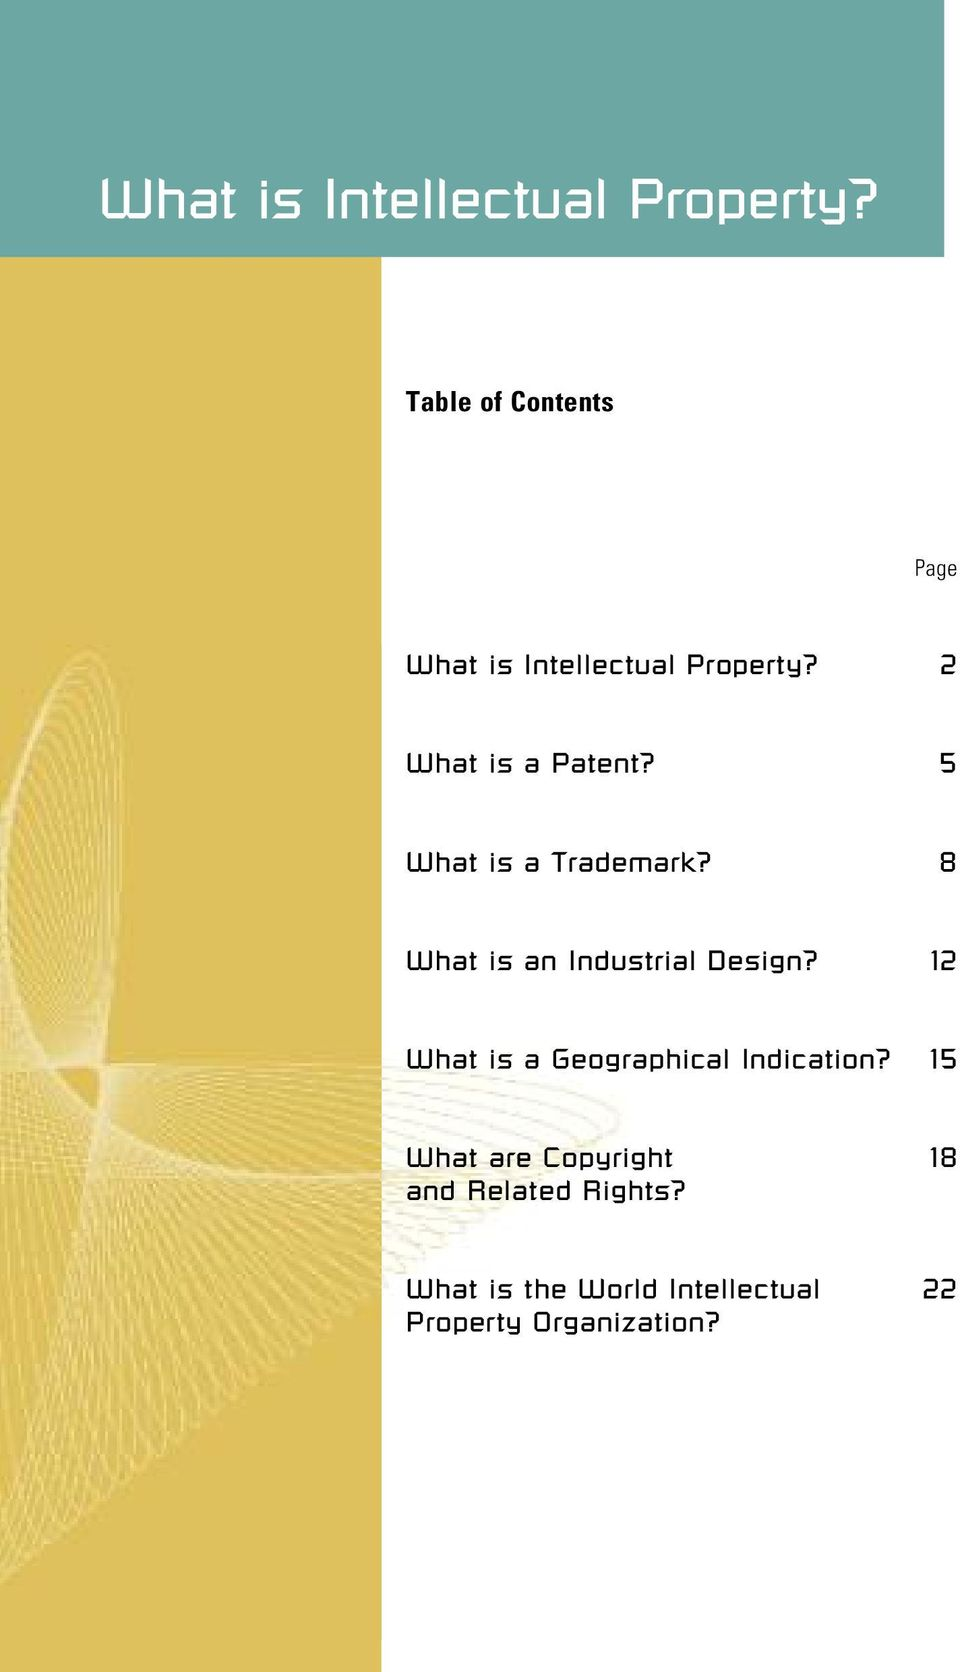 8 What is an Industrial Design? 12 What is a Geographical Indication?